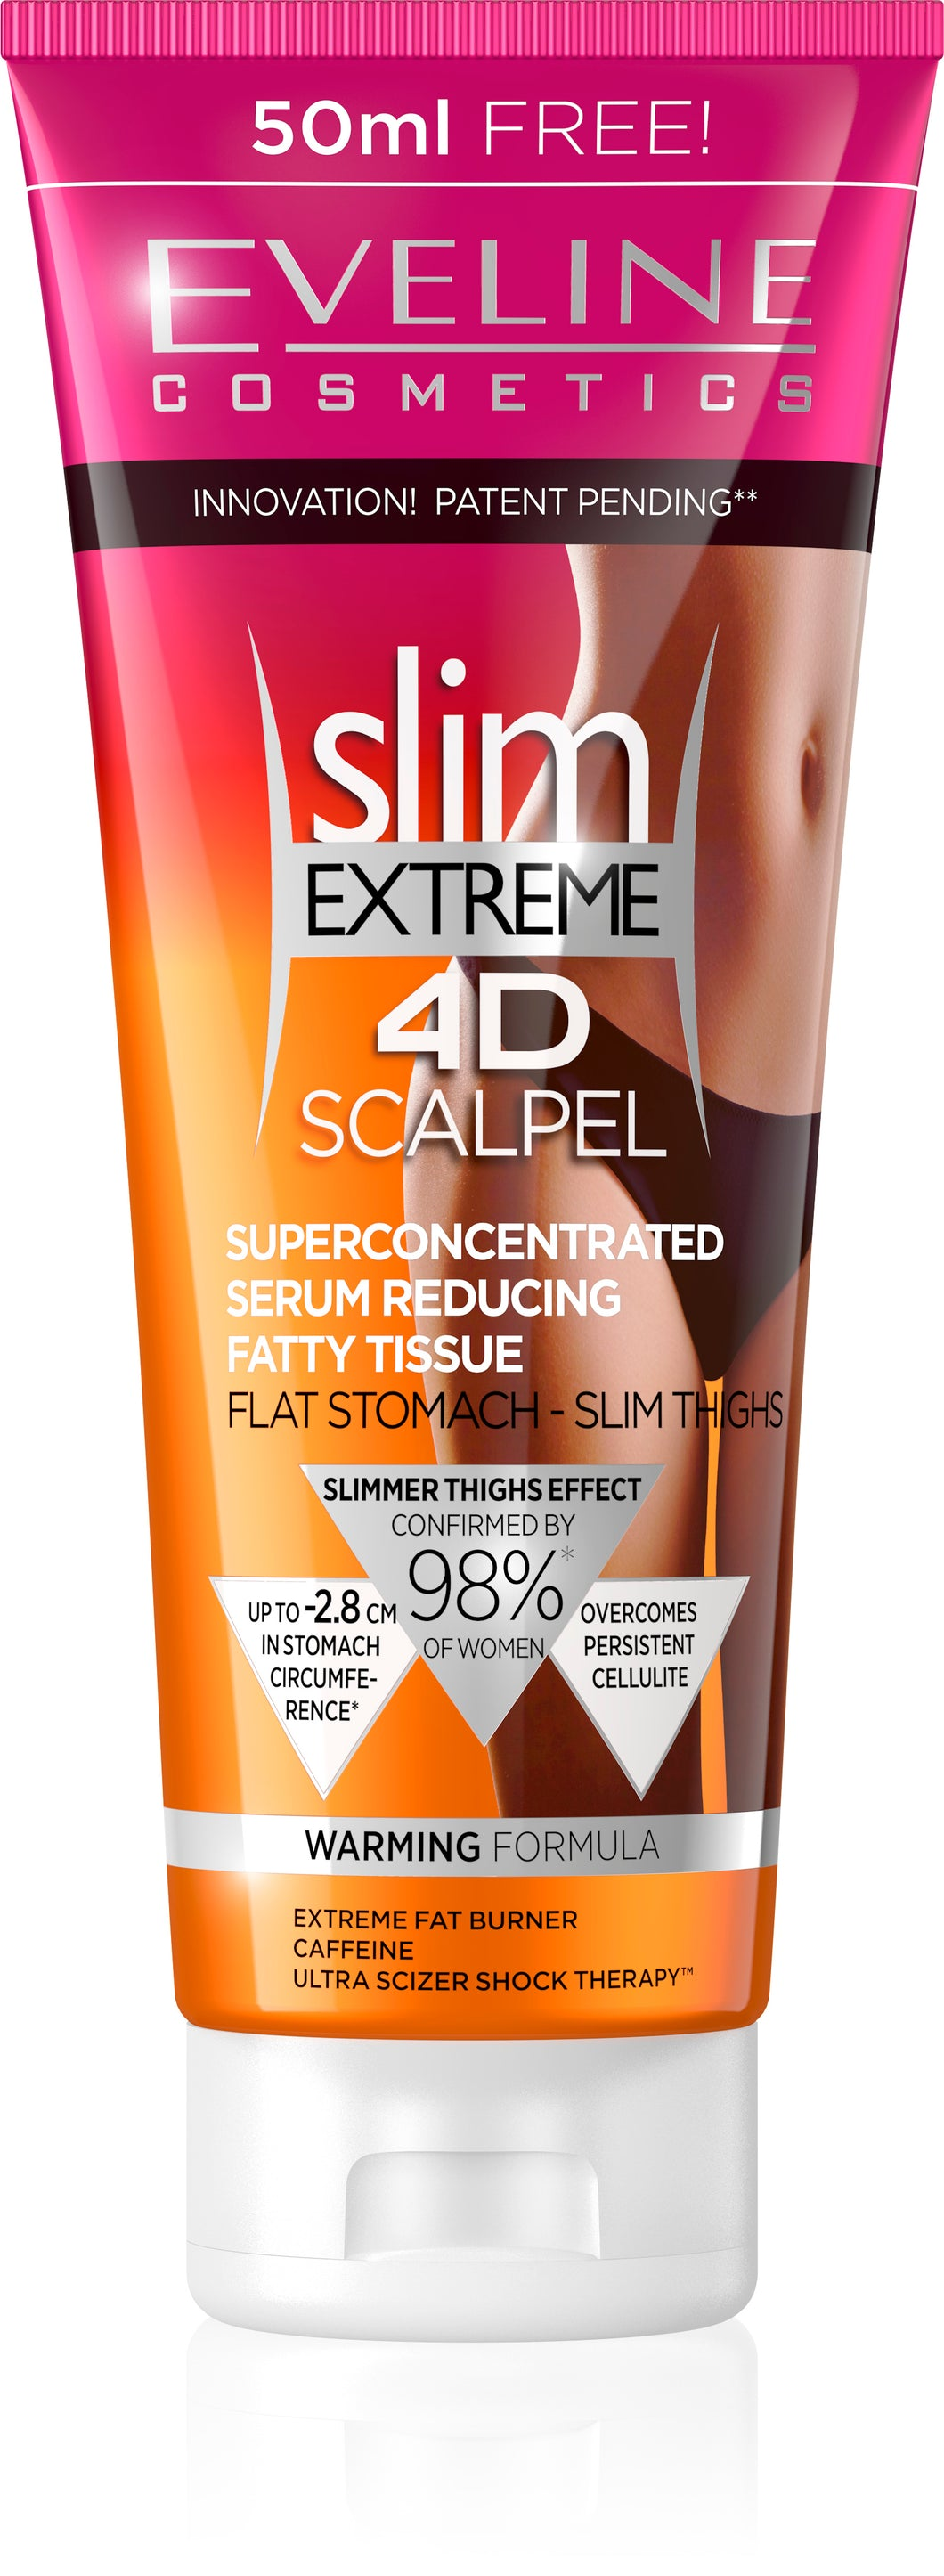 Slim extreme 4d scalpel superkoncentrovani reduk.serum 250ml